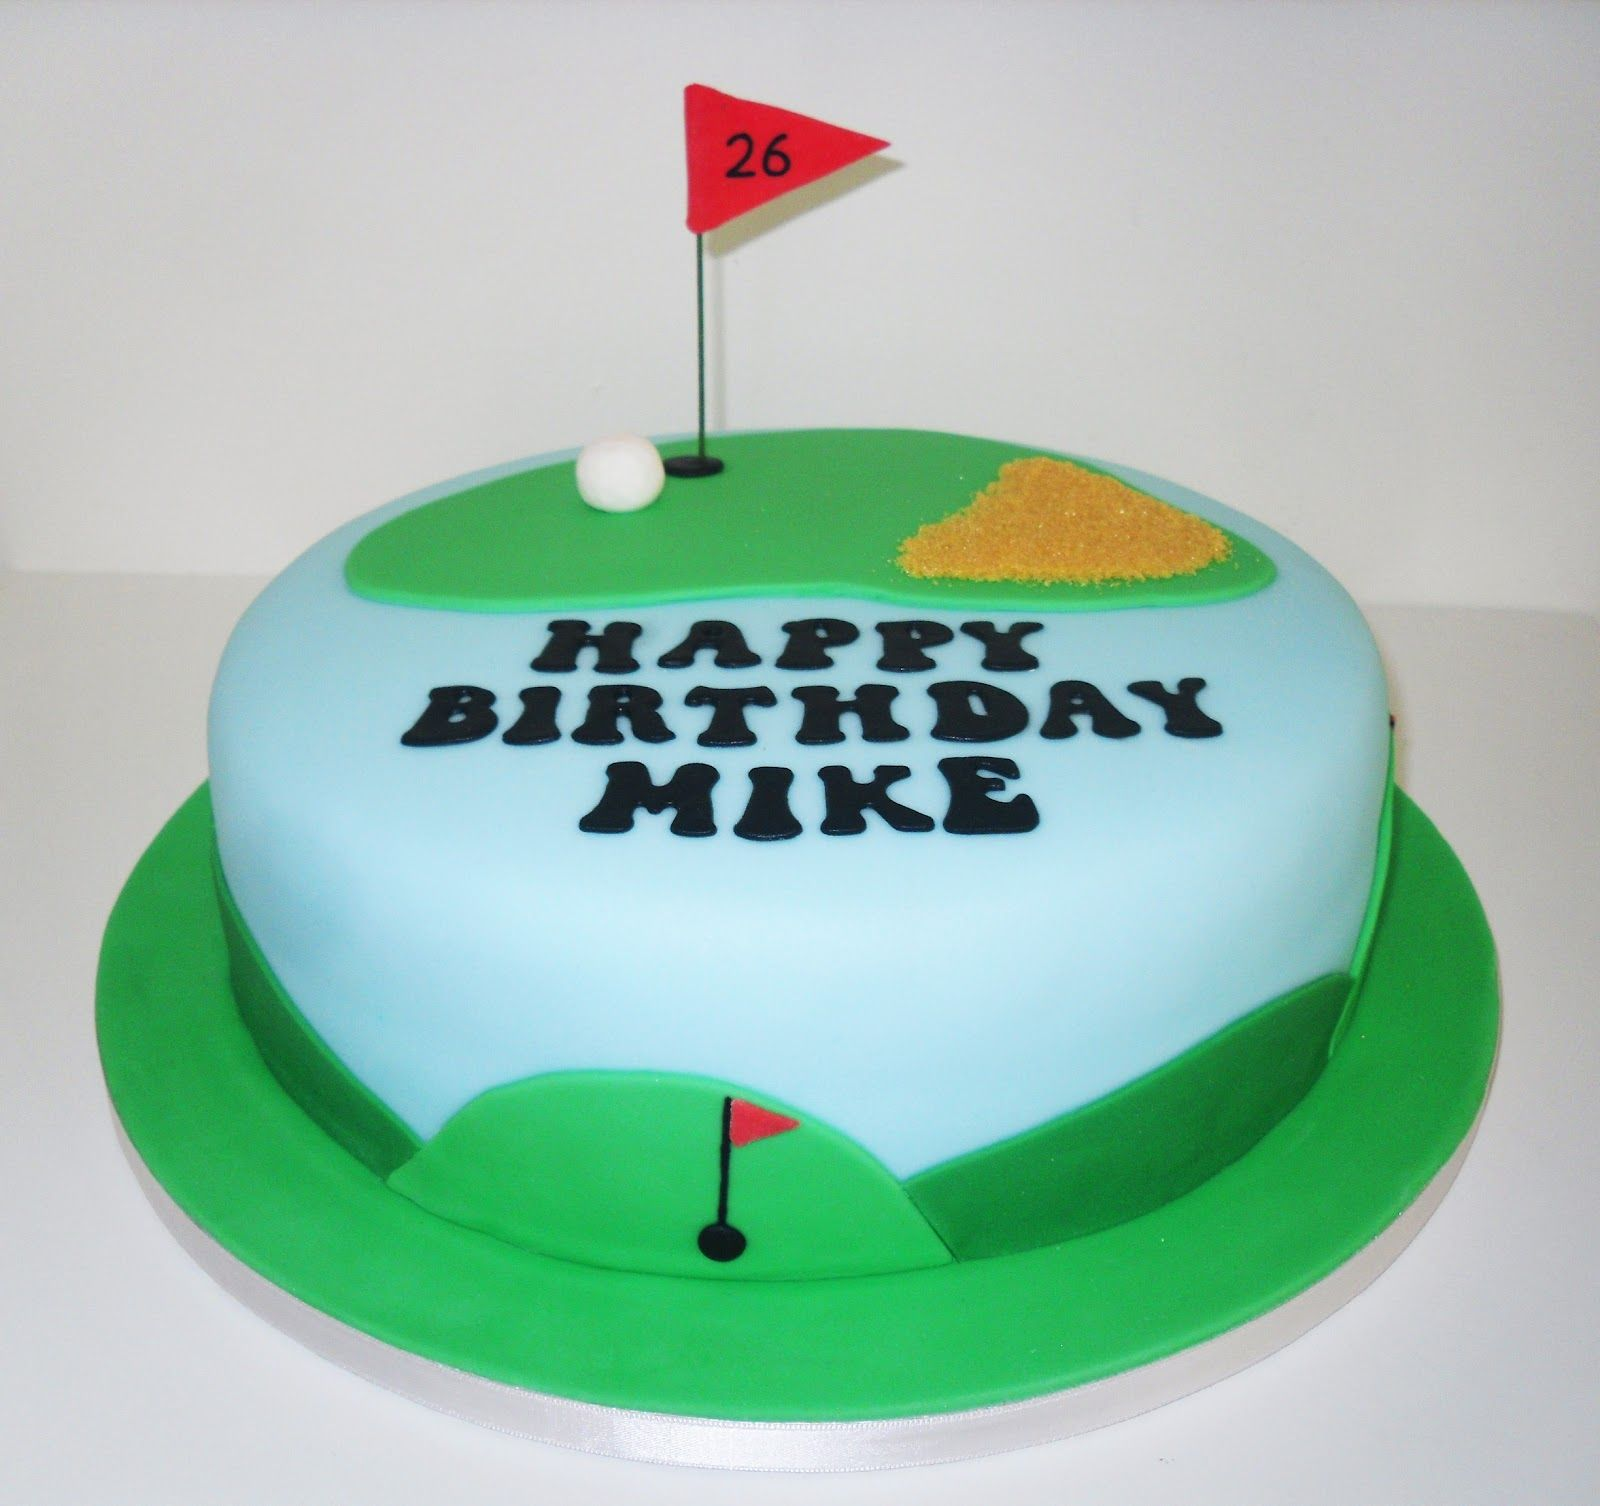 Mikes Golf Cake by The Coloured Bubble Cakery Find us on Facebook